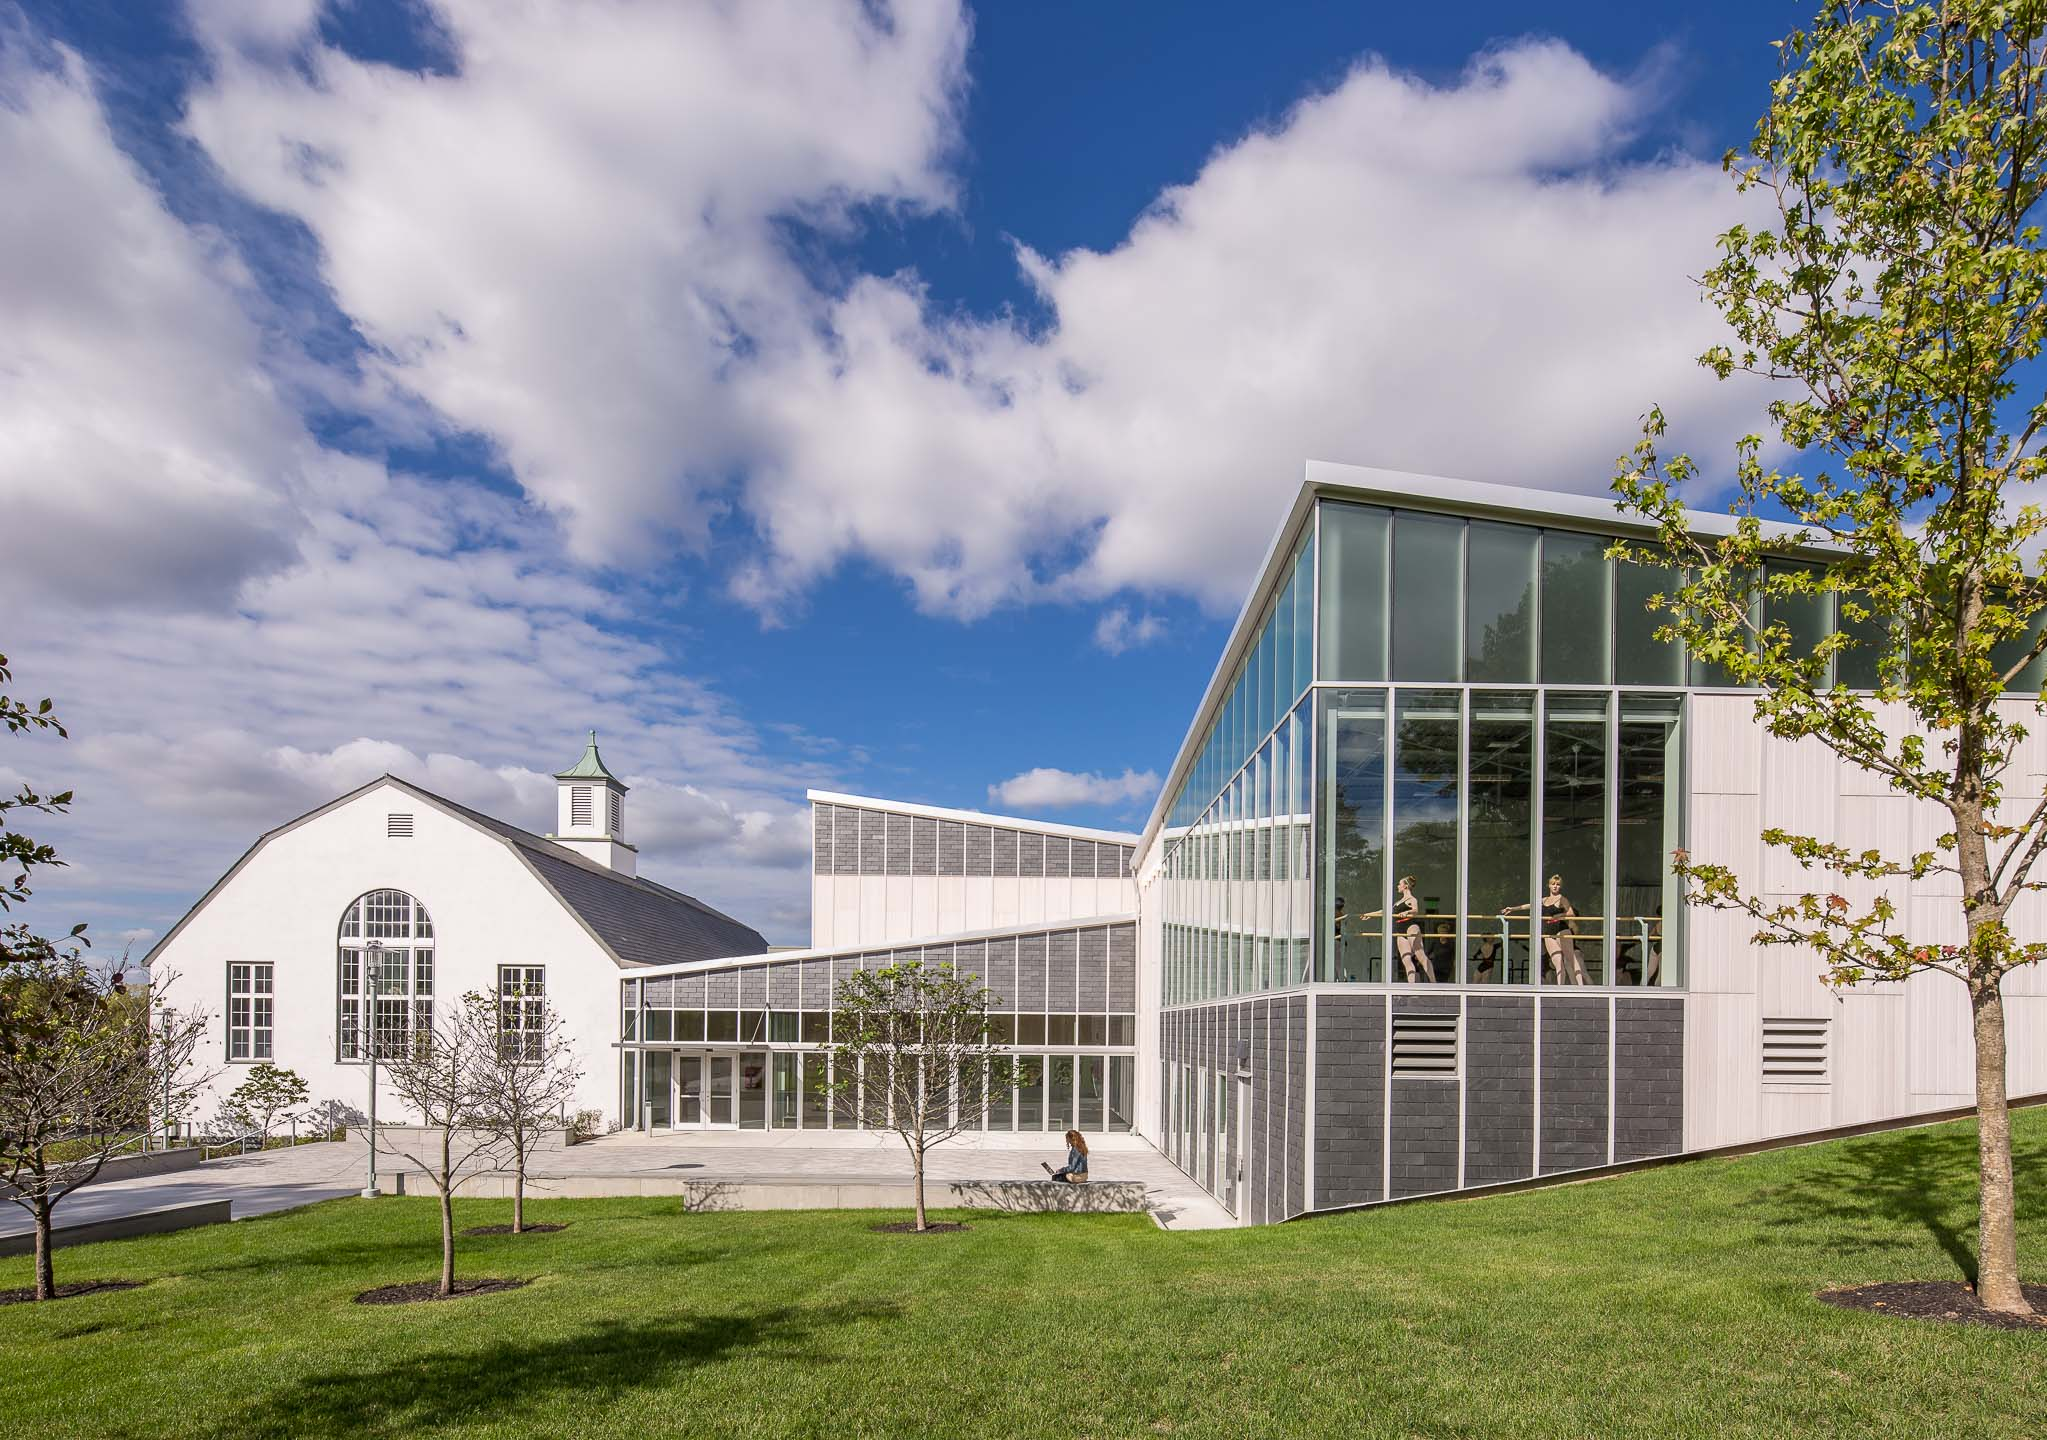 Delbridge Family Center for the Arts, Walnut Hill School for the Arts. Architect: designLAB Architects. Photo: © Jonathan Hillyer.